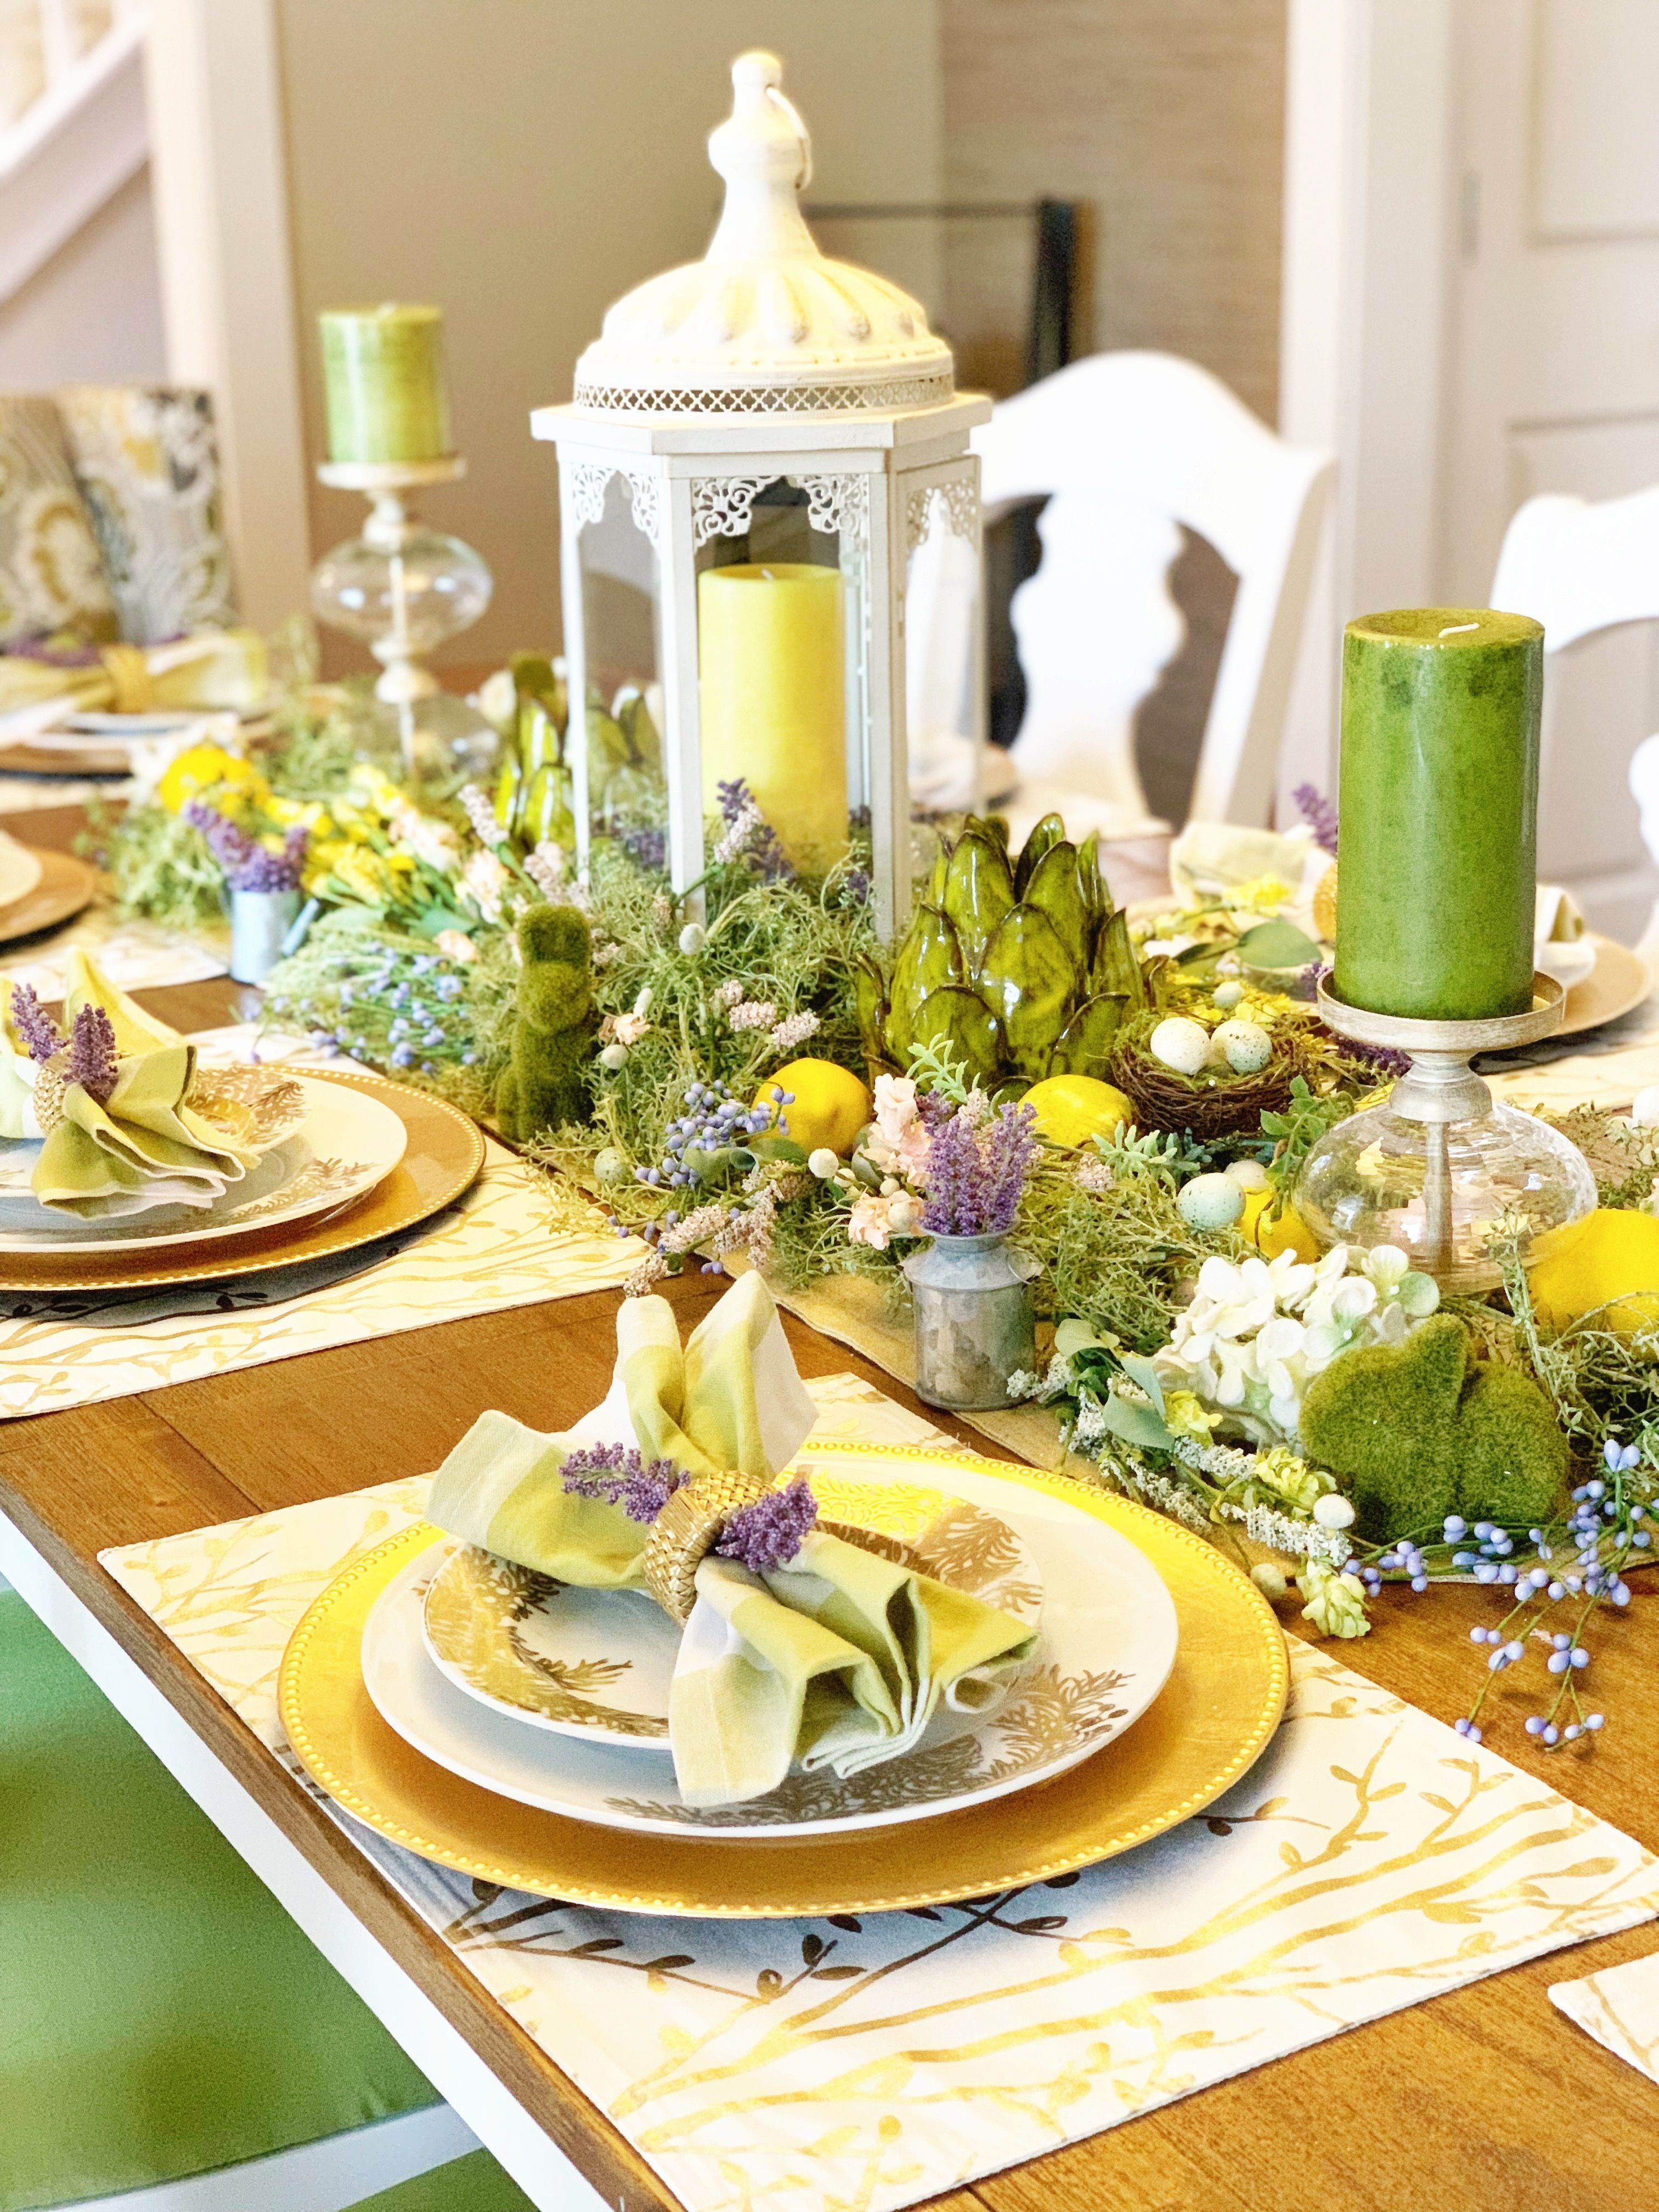 April Spring Decorations Dining Room Table Setting And Centerpiece For Easter Holiday Wi Easter Dining Room Table Decor Dining Room Table Set Dining Room Table